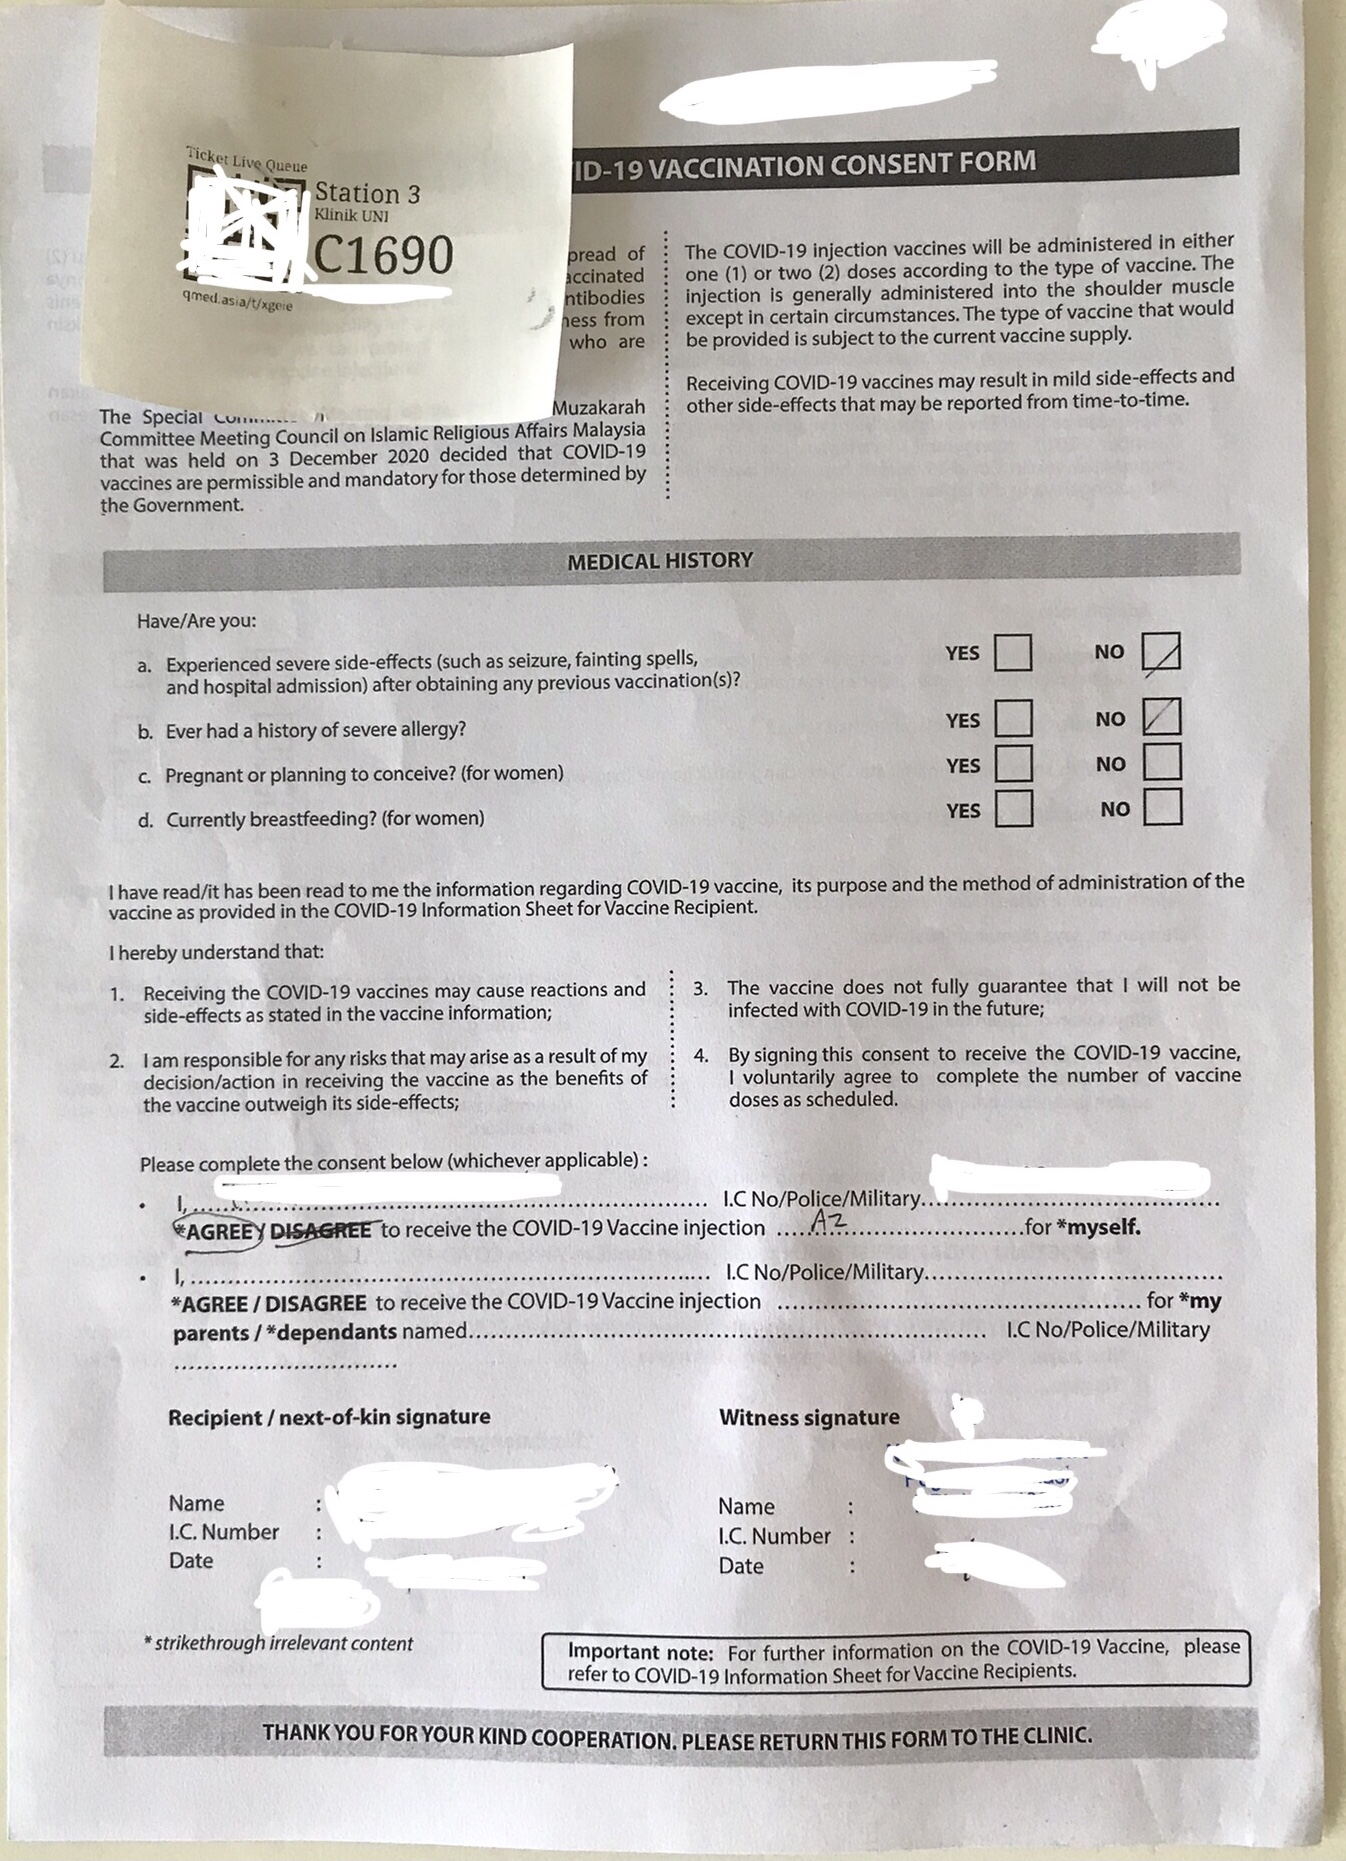 The vaccination consent form, there are 2 copies, fill up both.